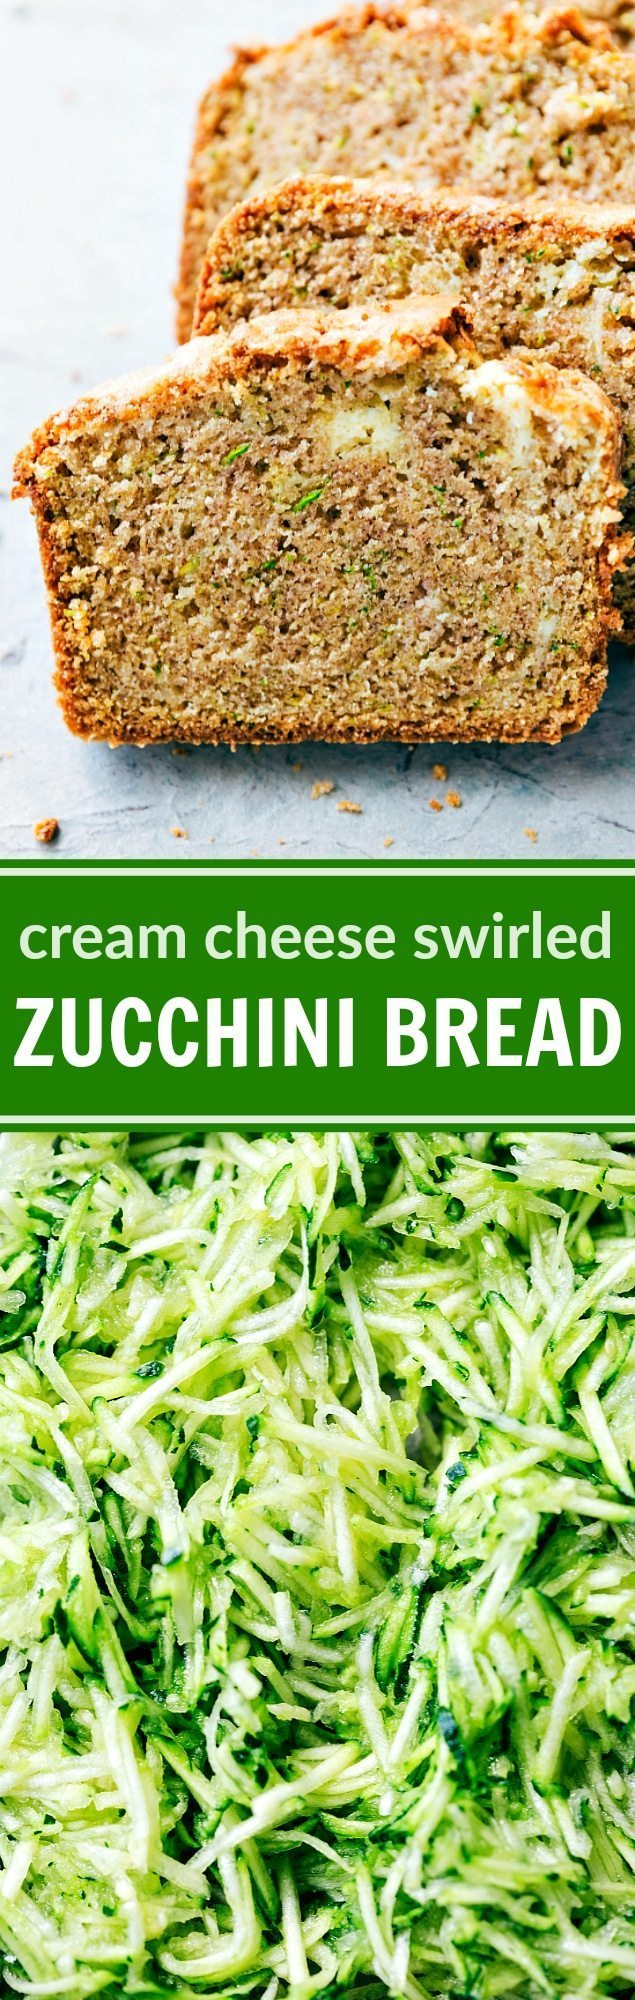 A deliciously thick swirl of cream cheese inside the best ever zucchini bread. This